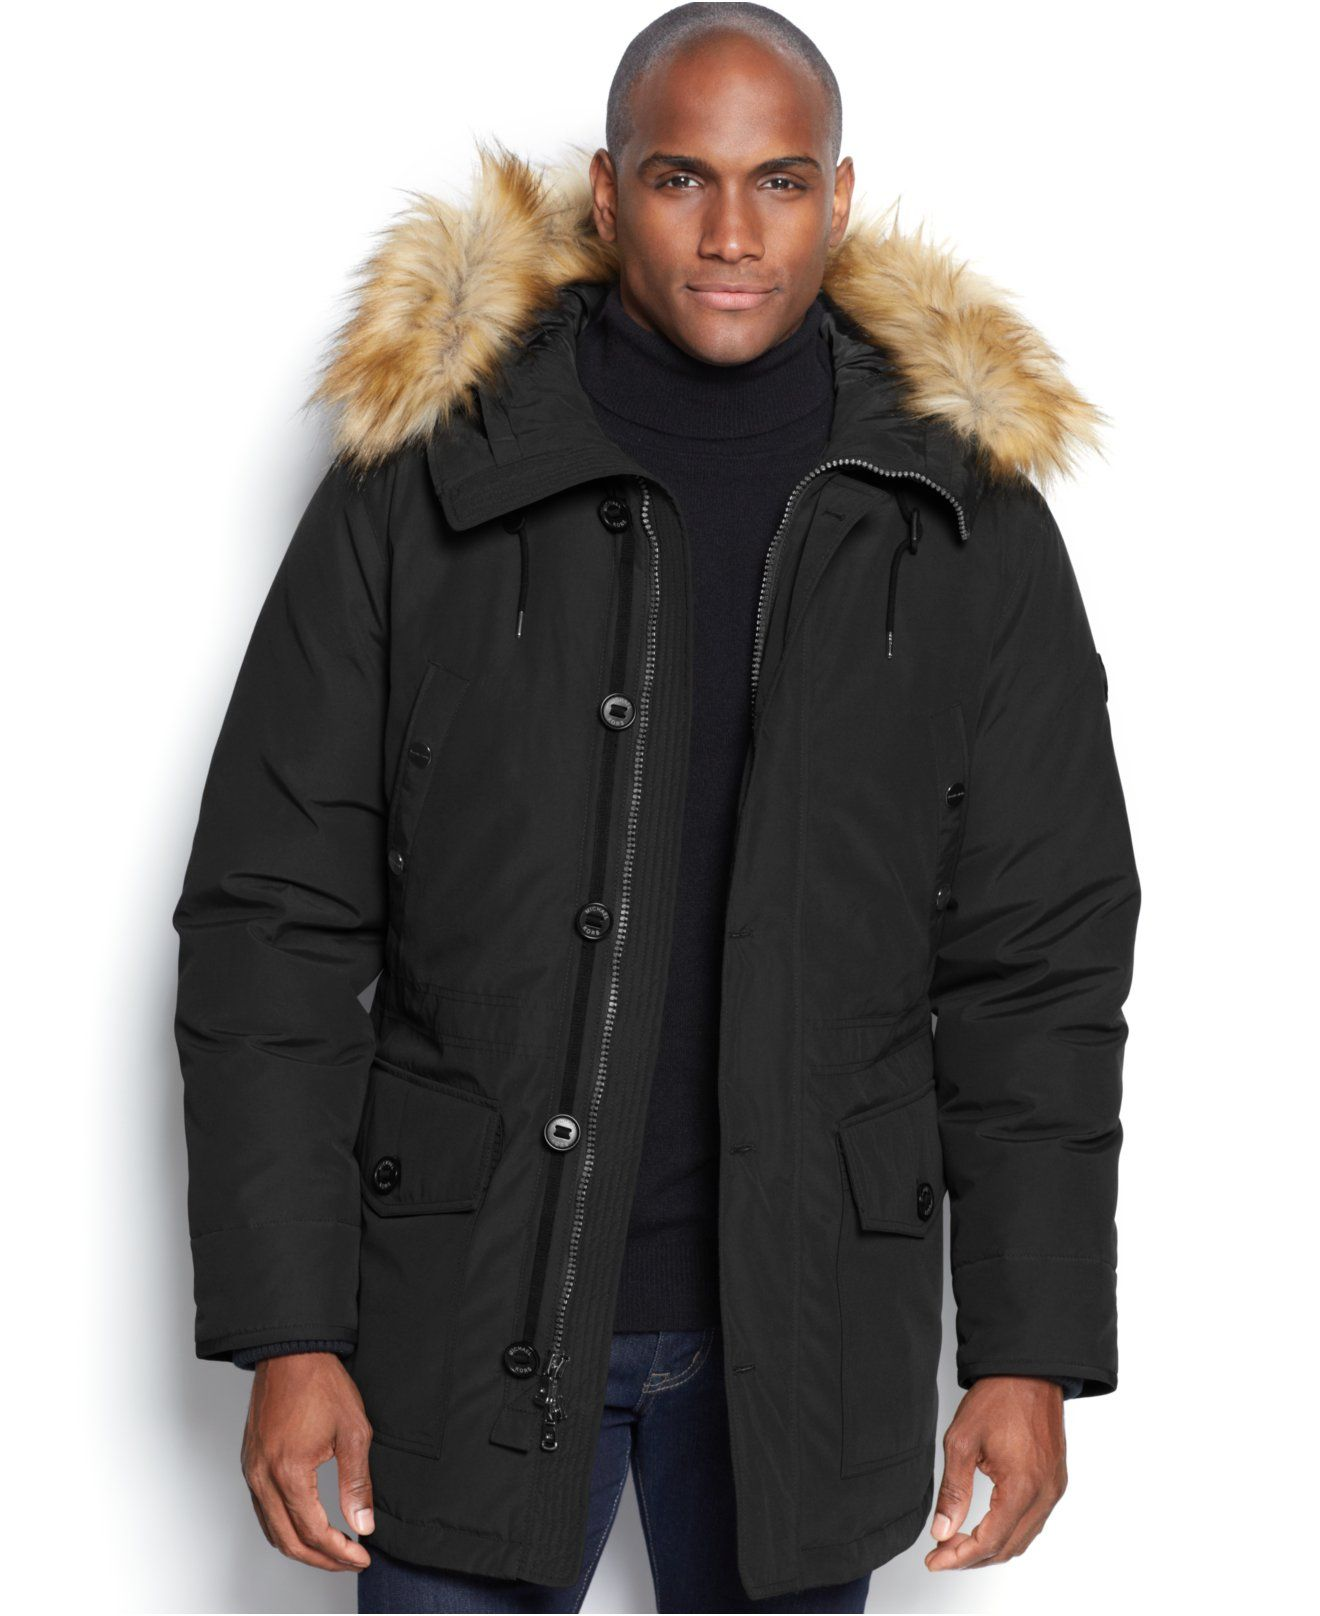 c3a25b5f9f0 MICHAEL Michael Kors Mandal Faux-Fur-Trim Hooded Down Parka - Coats    Jackets - Men - Macy s